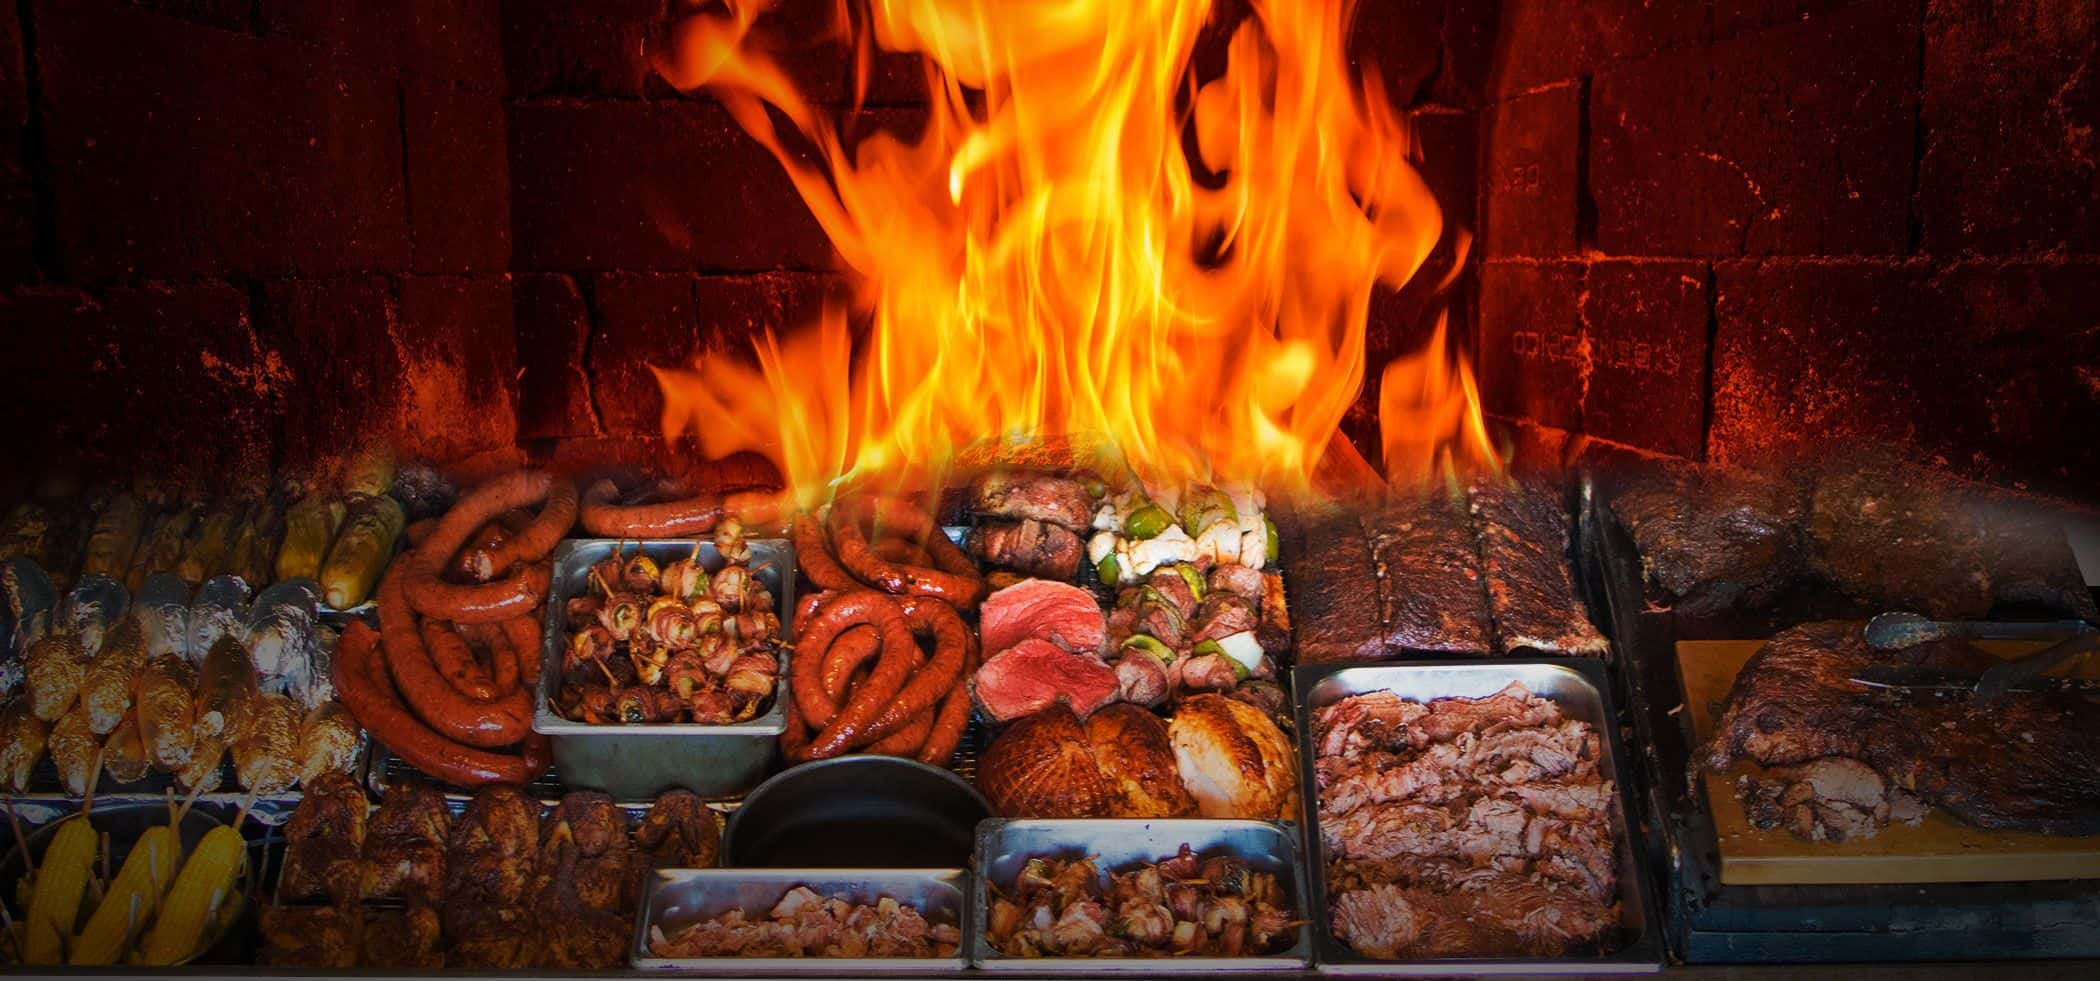 barbecue places near me open